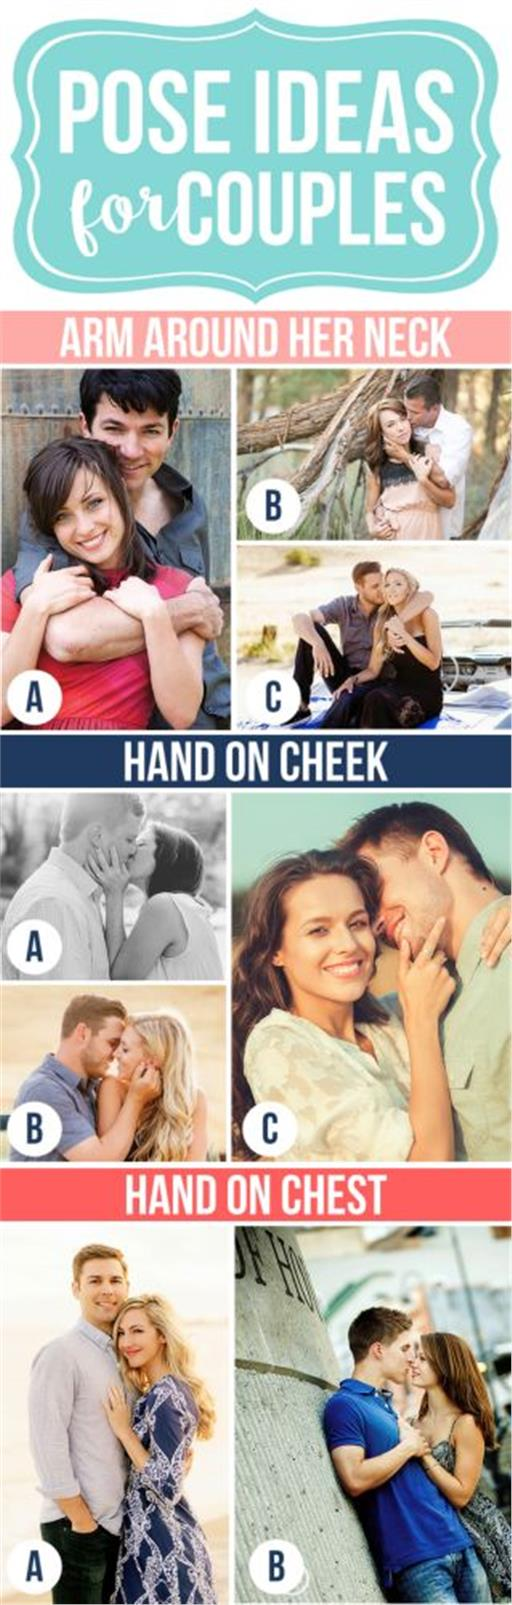 27396766_Pose_Ideas_for_Couples_1.limghandler